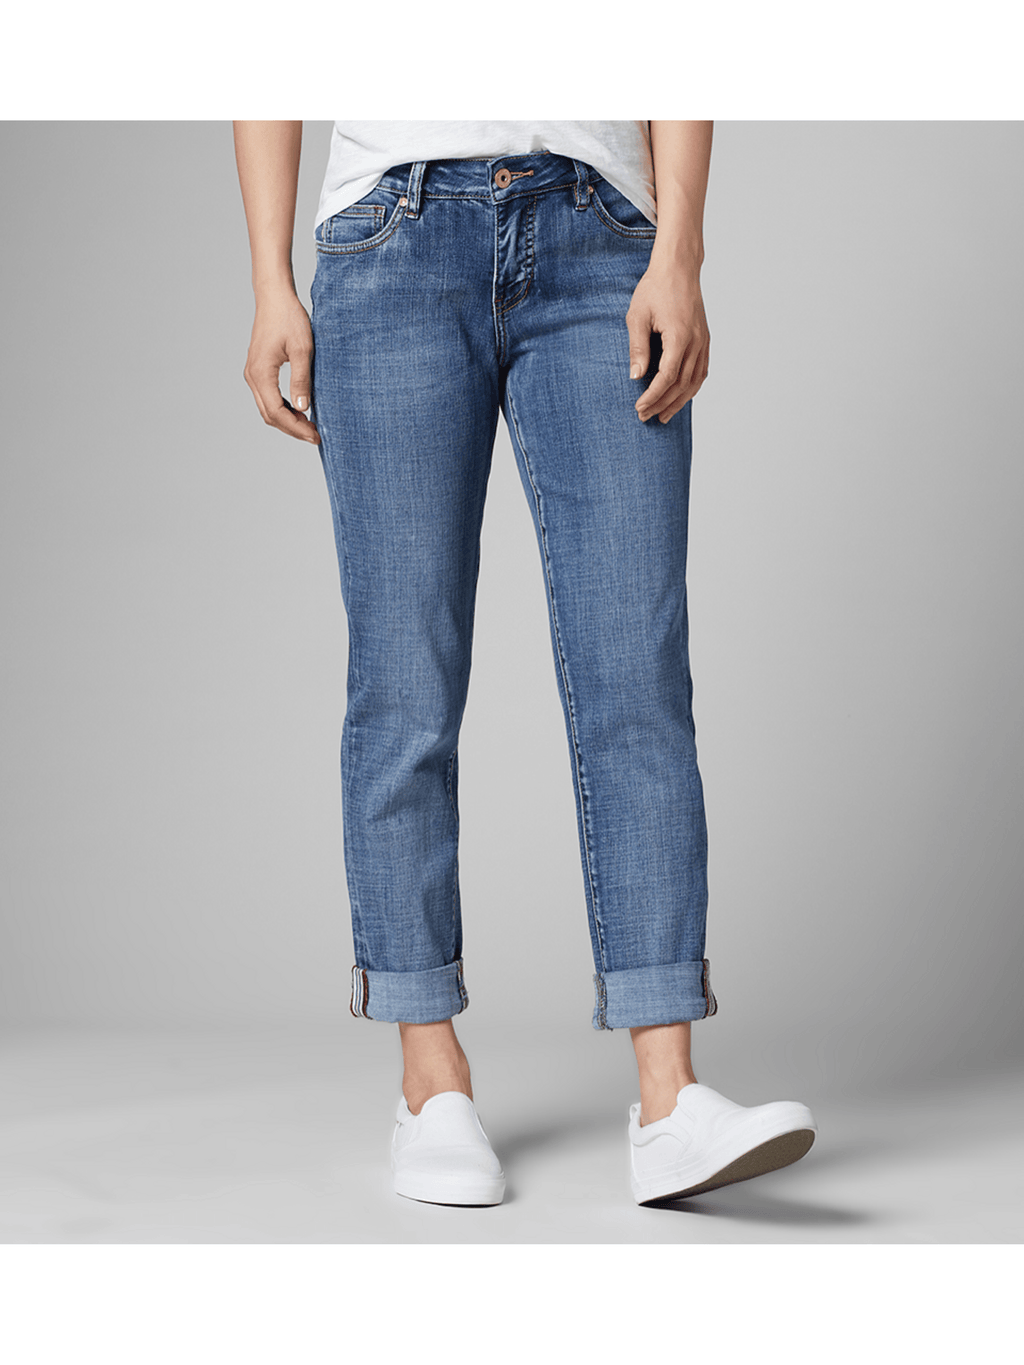 Carter Girlfriend Jeans - Jag Jeans